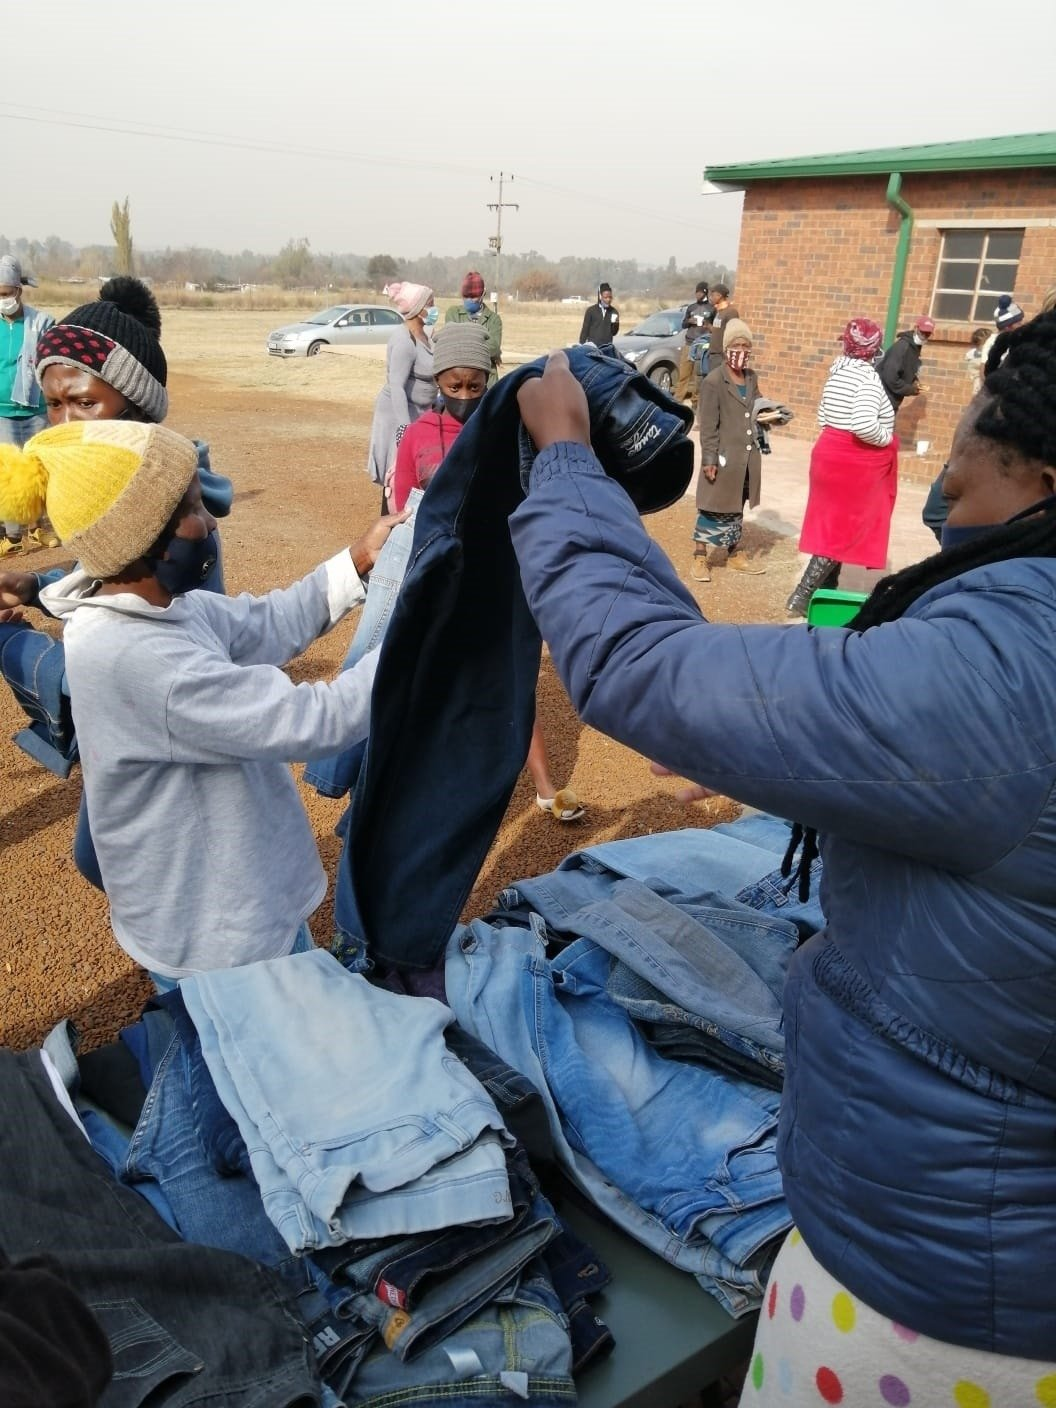 The Vaal Mall family adds warmth to winter with donated denims